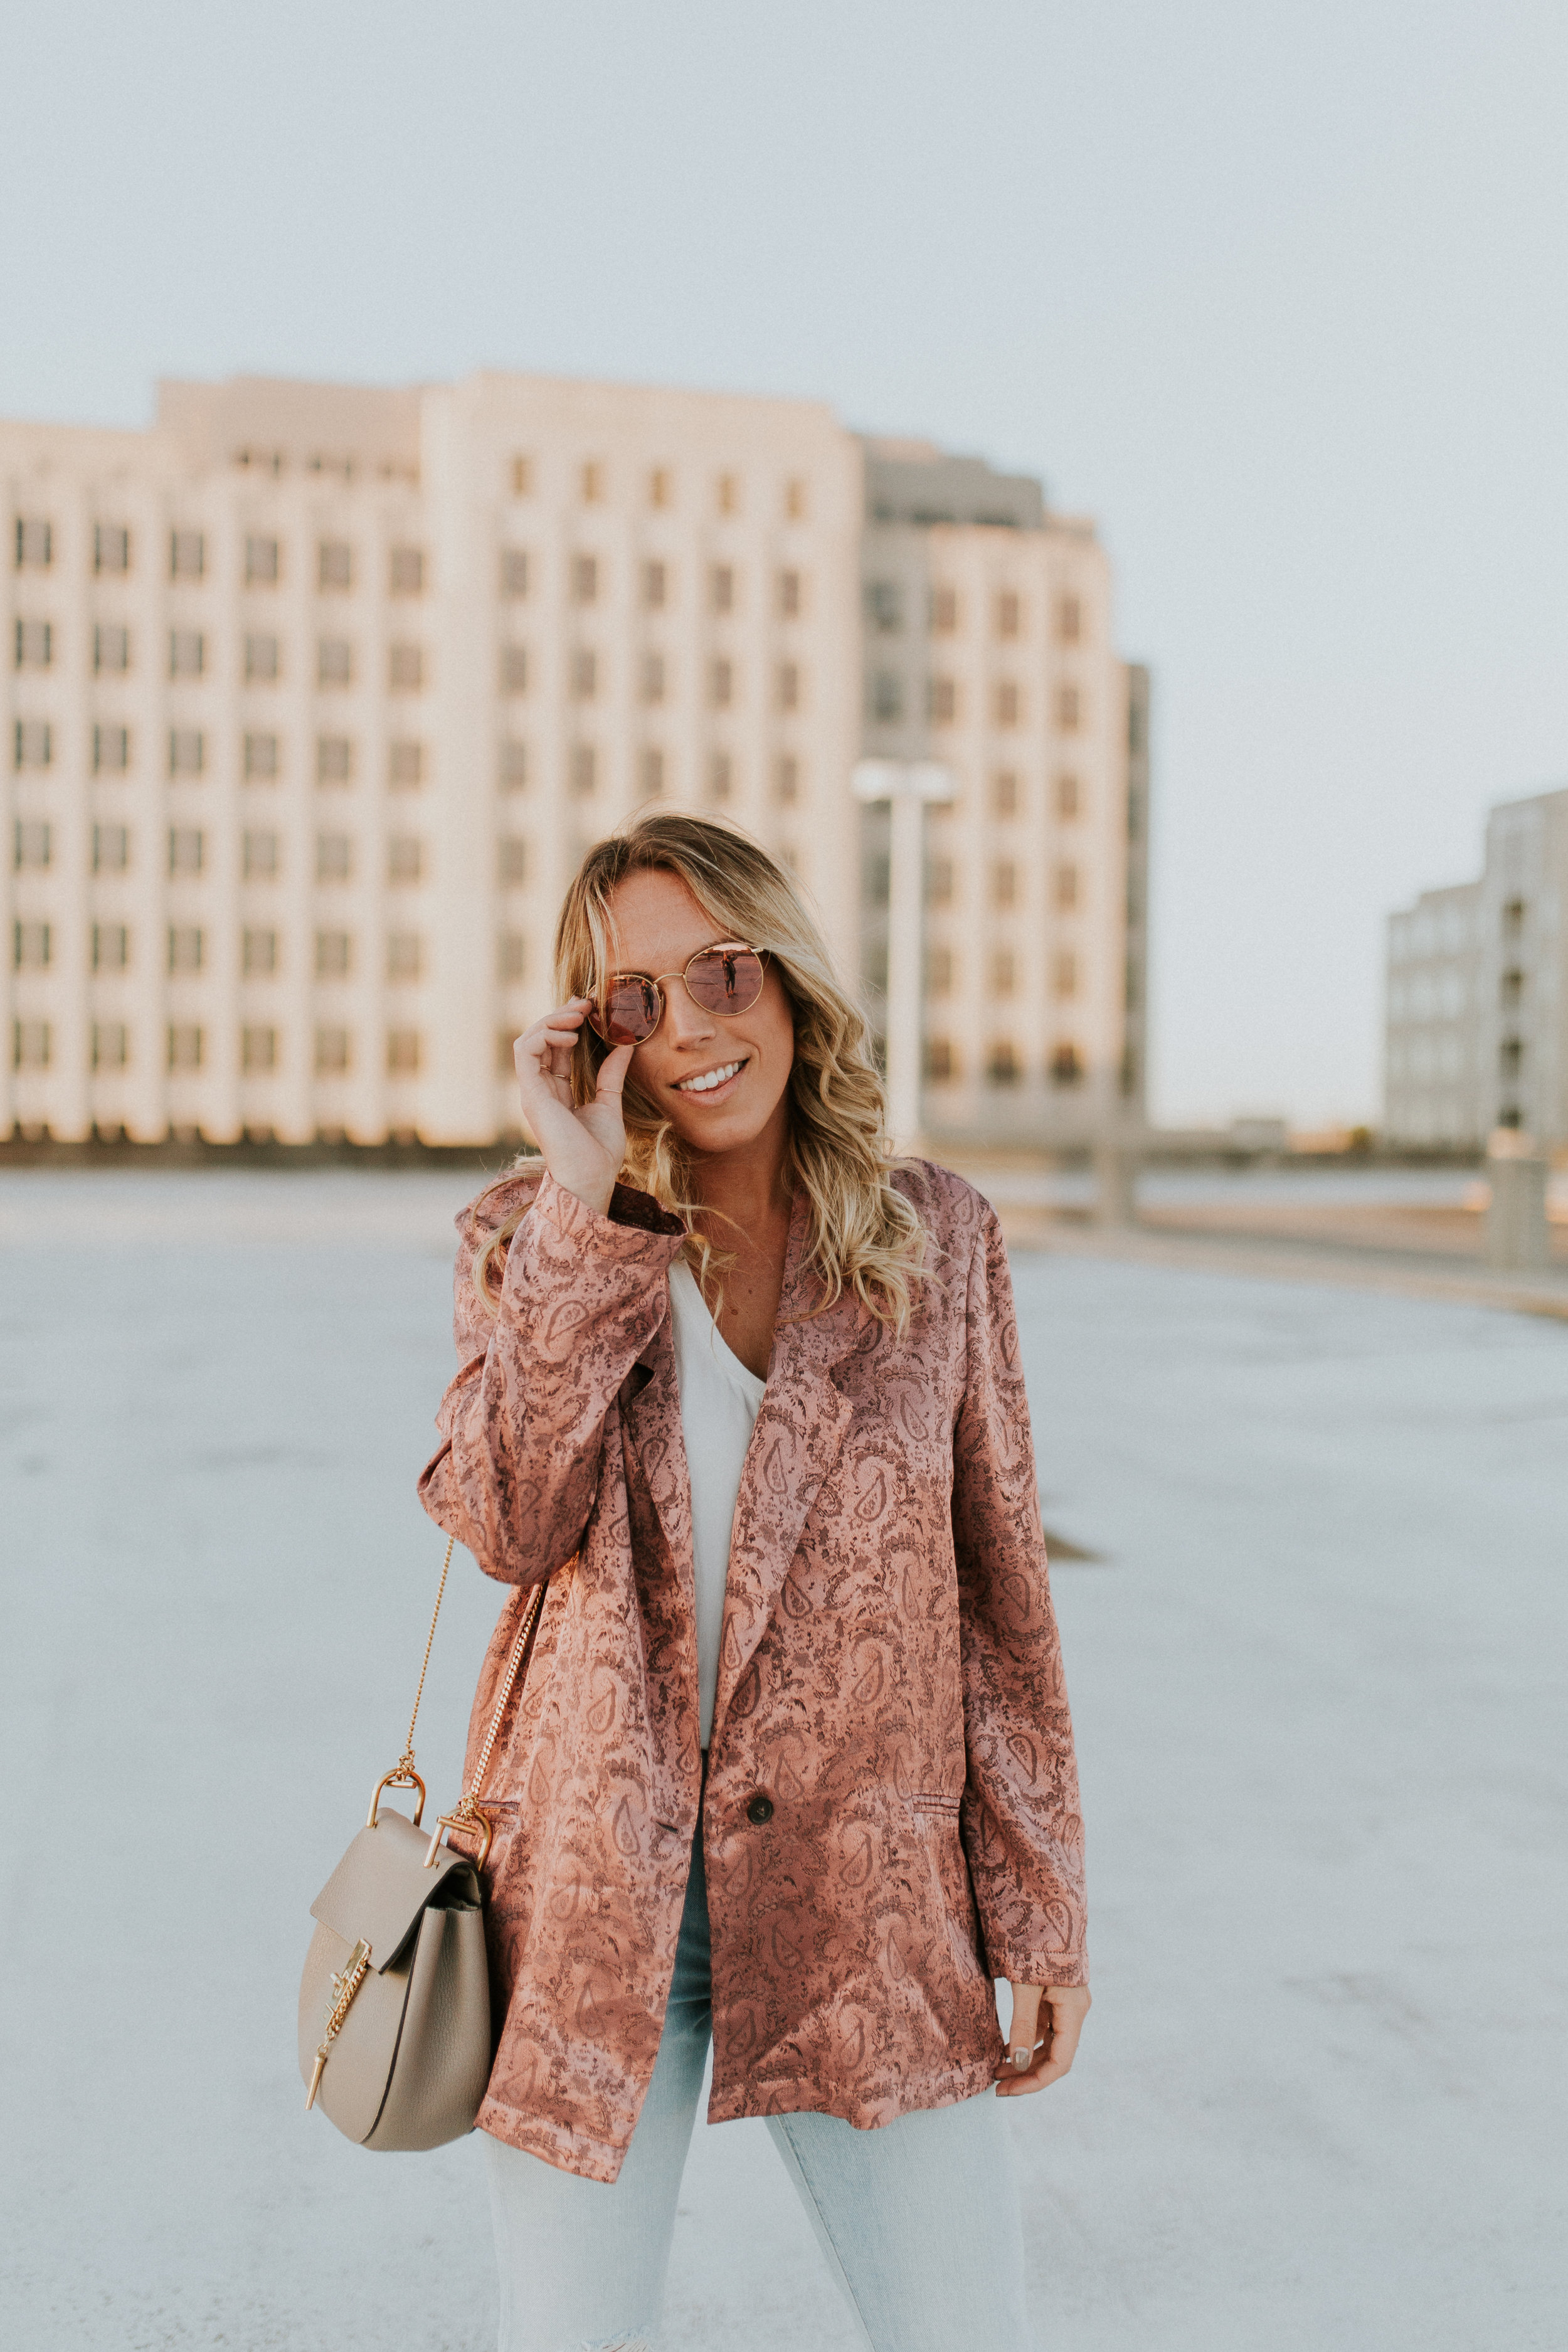 Blogger Gracefully Taylored in Free People Jacket and Sam Edelman Booties(12).jpg